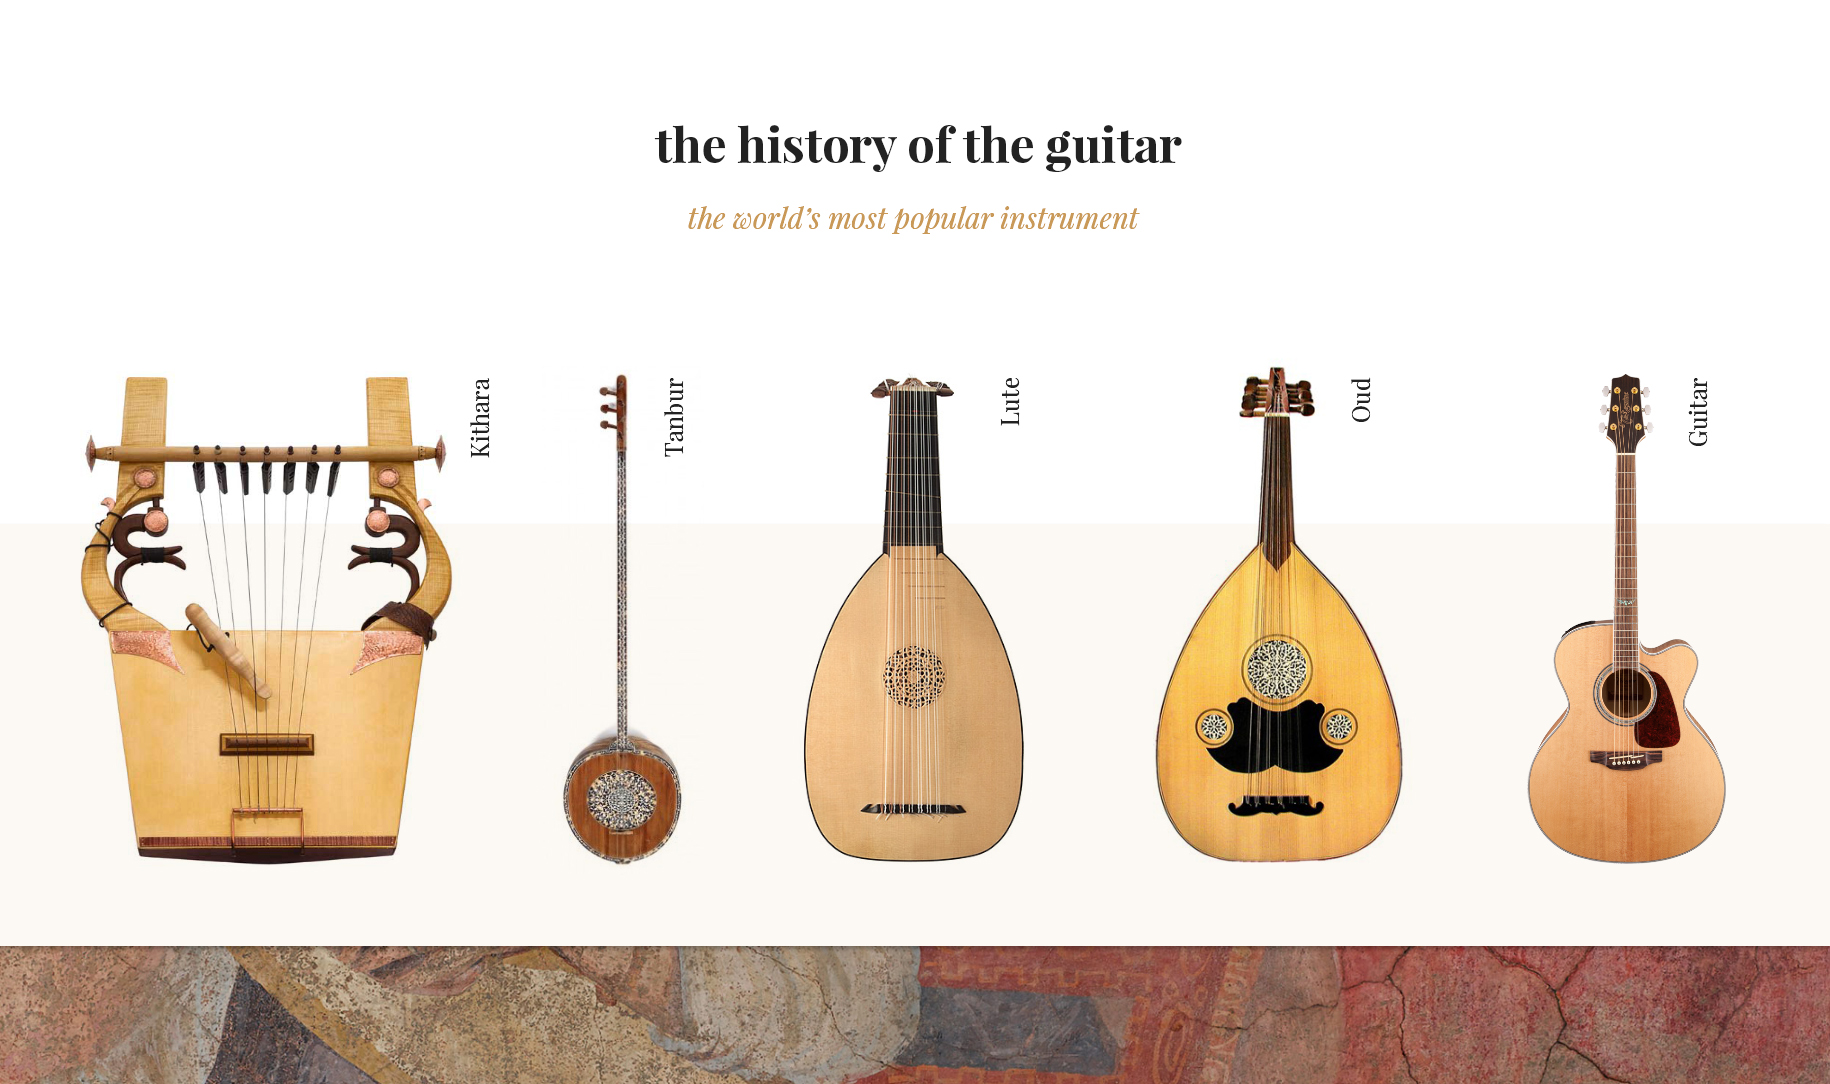 The History of the Guitar, the World's Most Popular Instrument